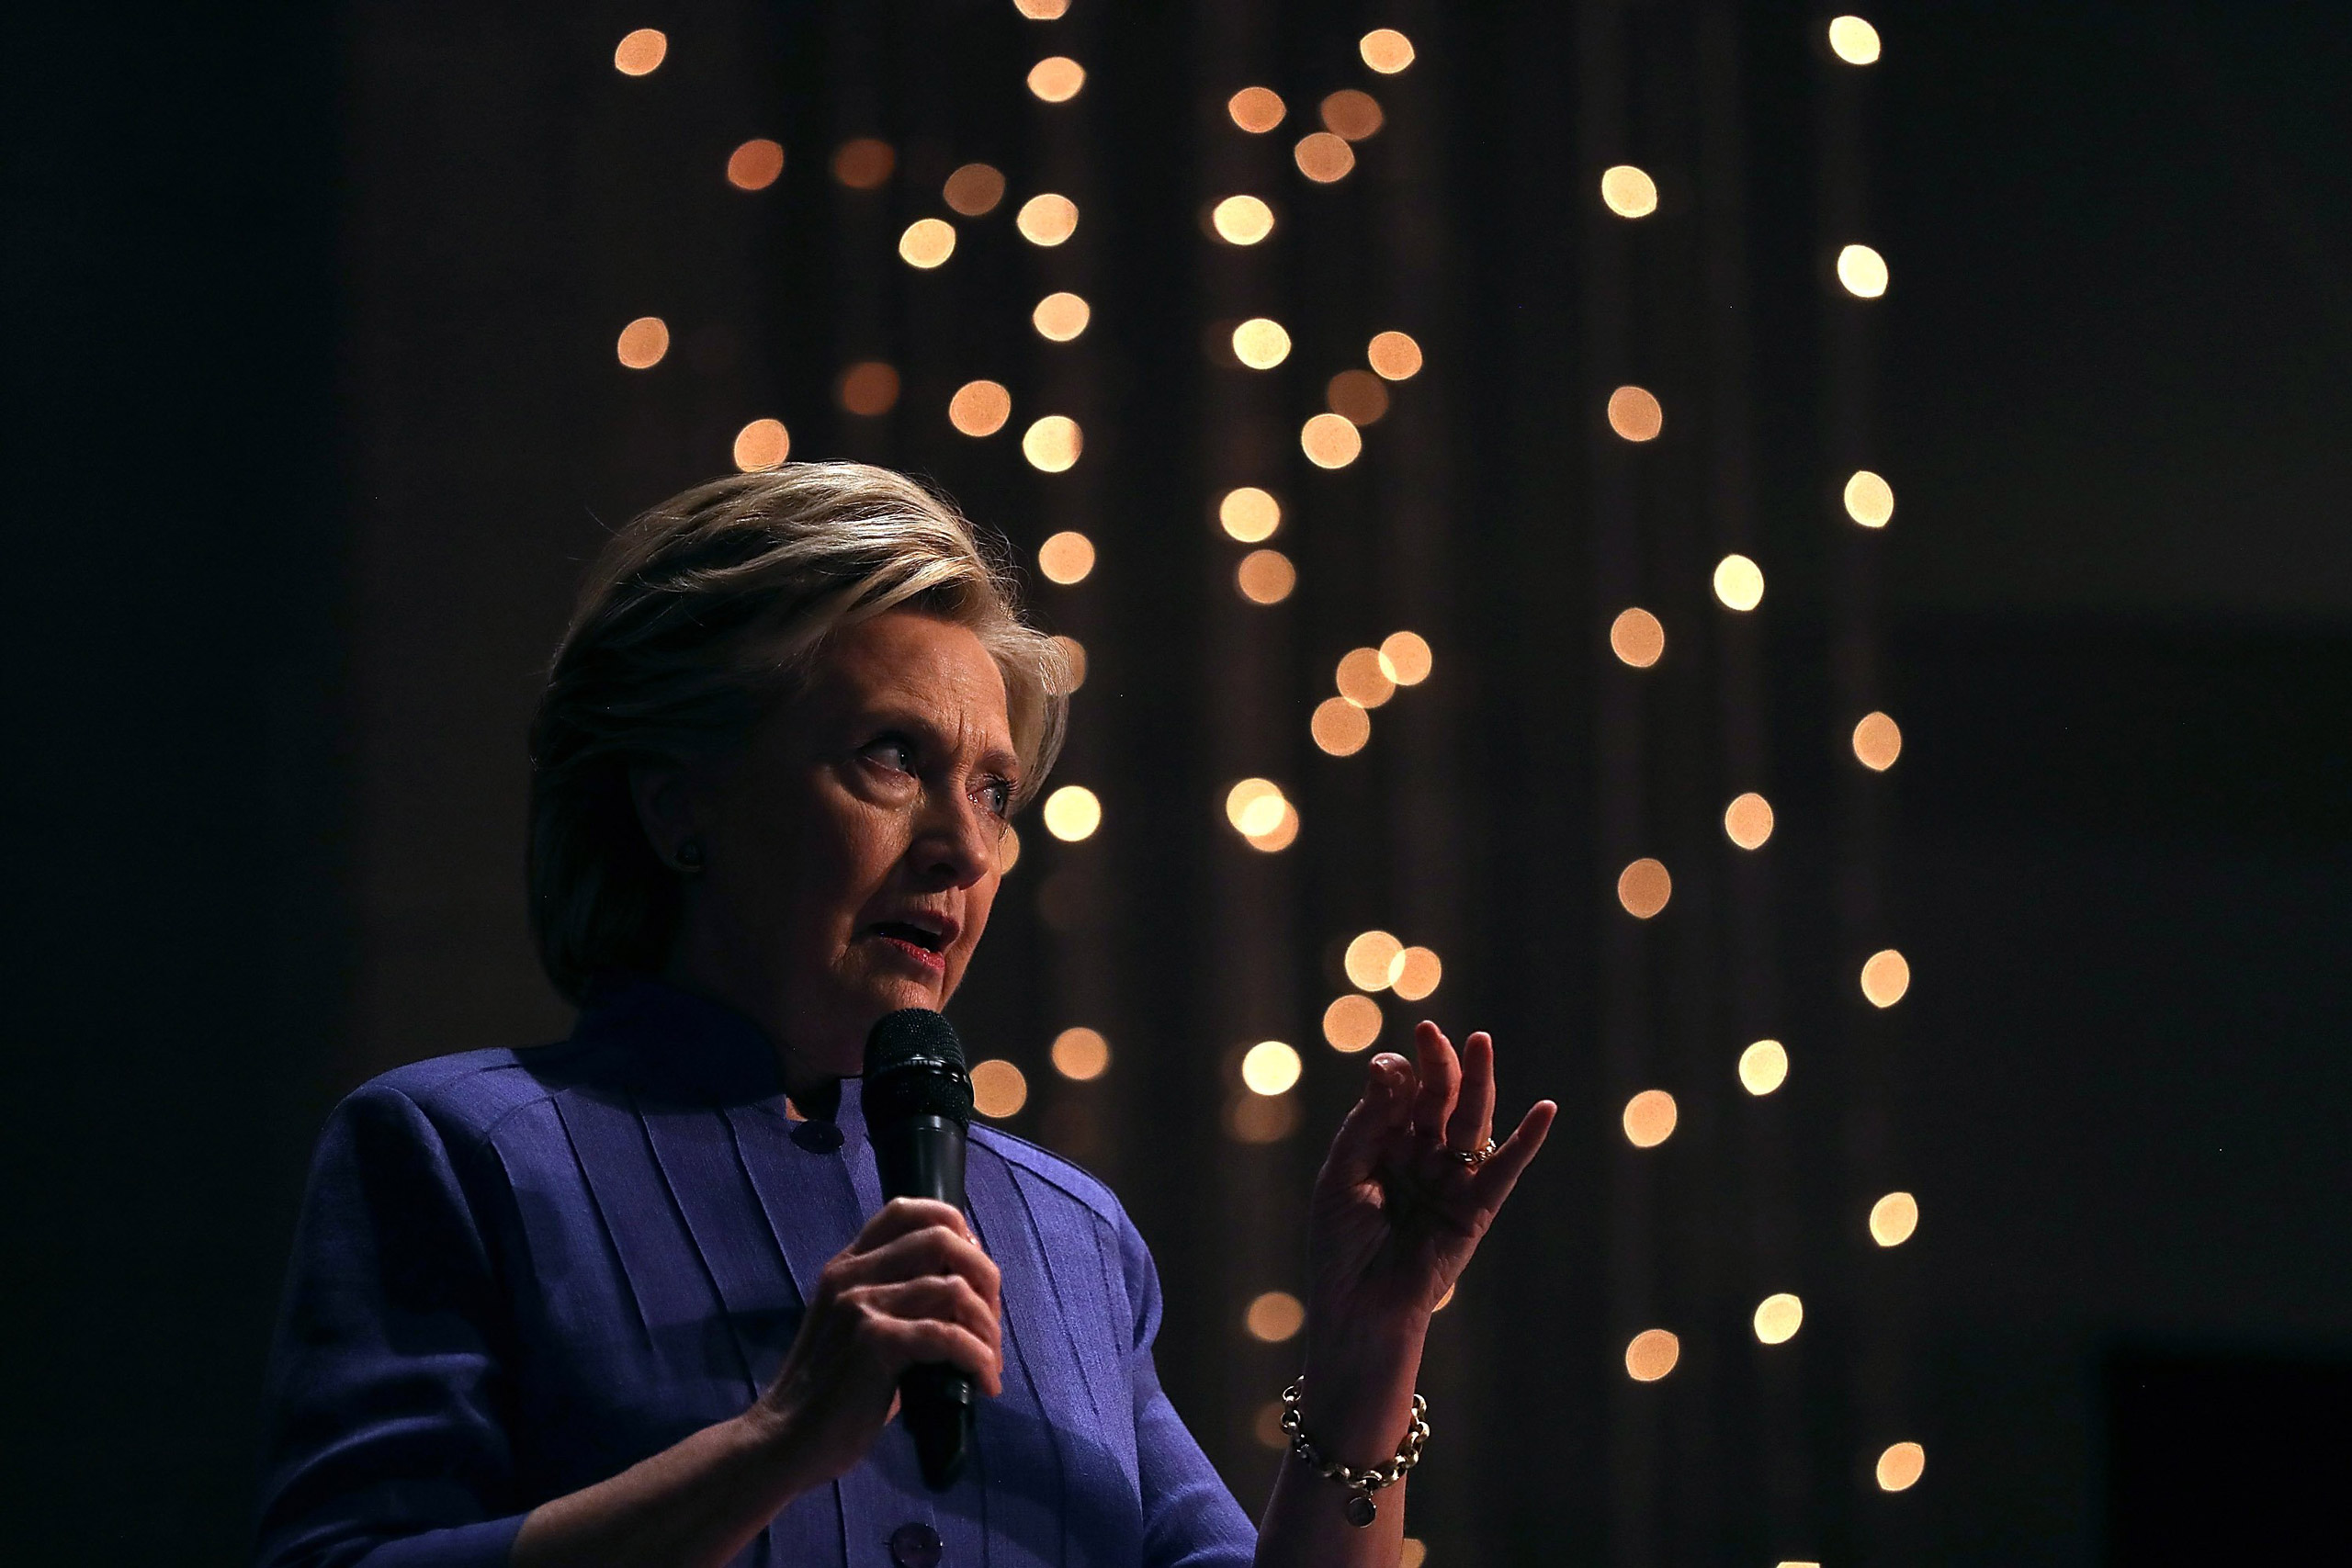 Democratic presidential nominee Hillary Clinton speaks during church services at New Mount Olive Baptist Church in Ft Lauderdale, Fla., on Oct. 30, 2016.